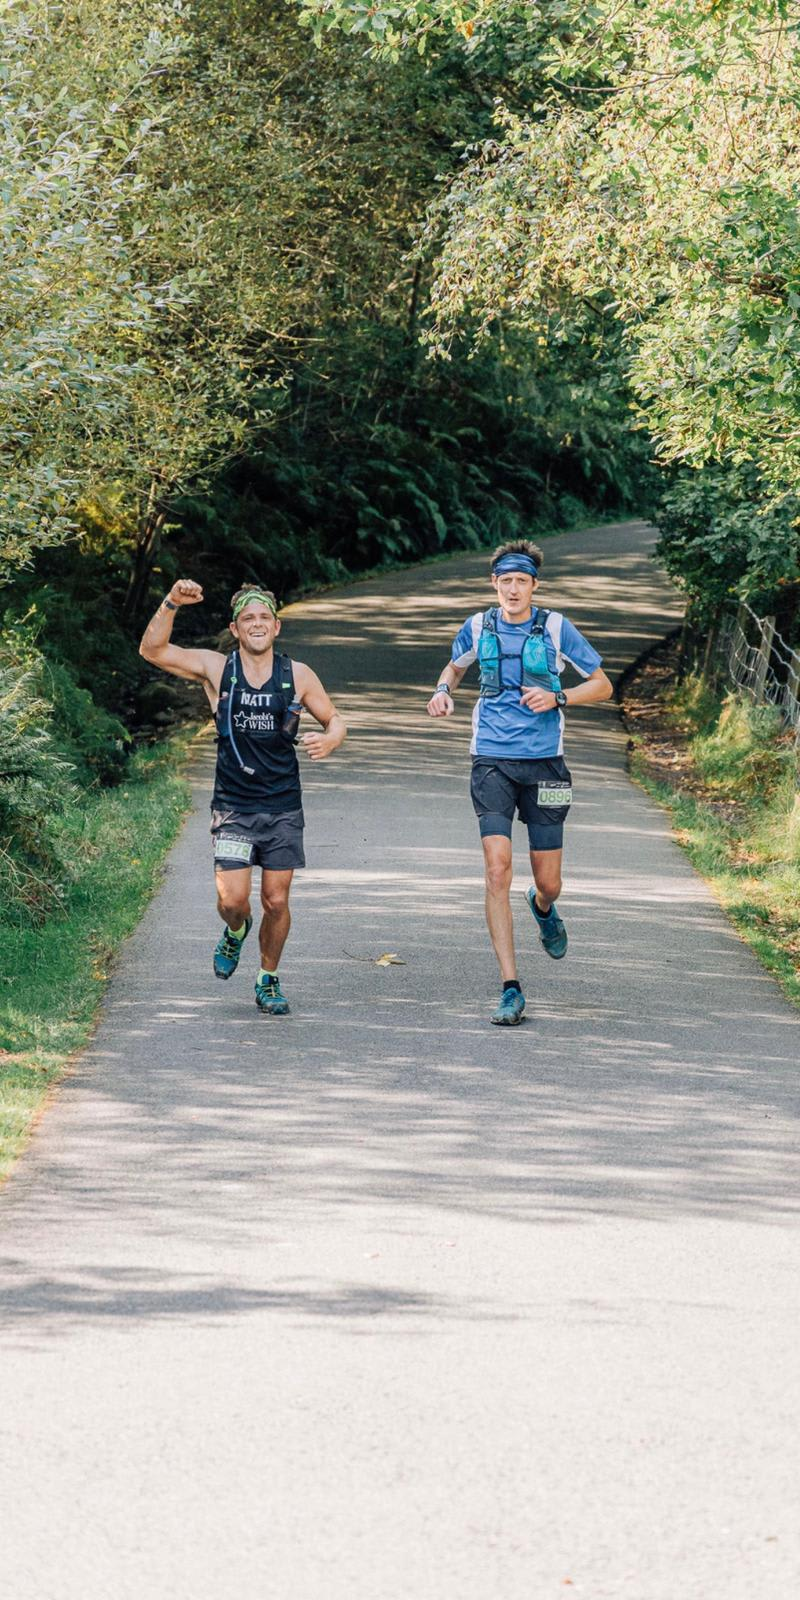 2 Marathon Runners on a country road